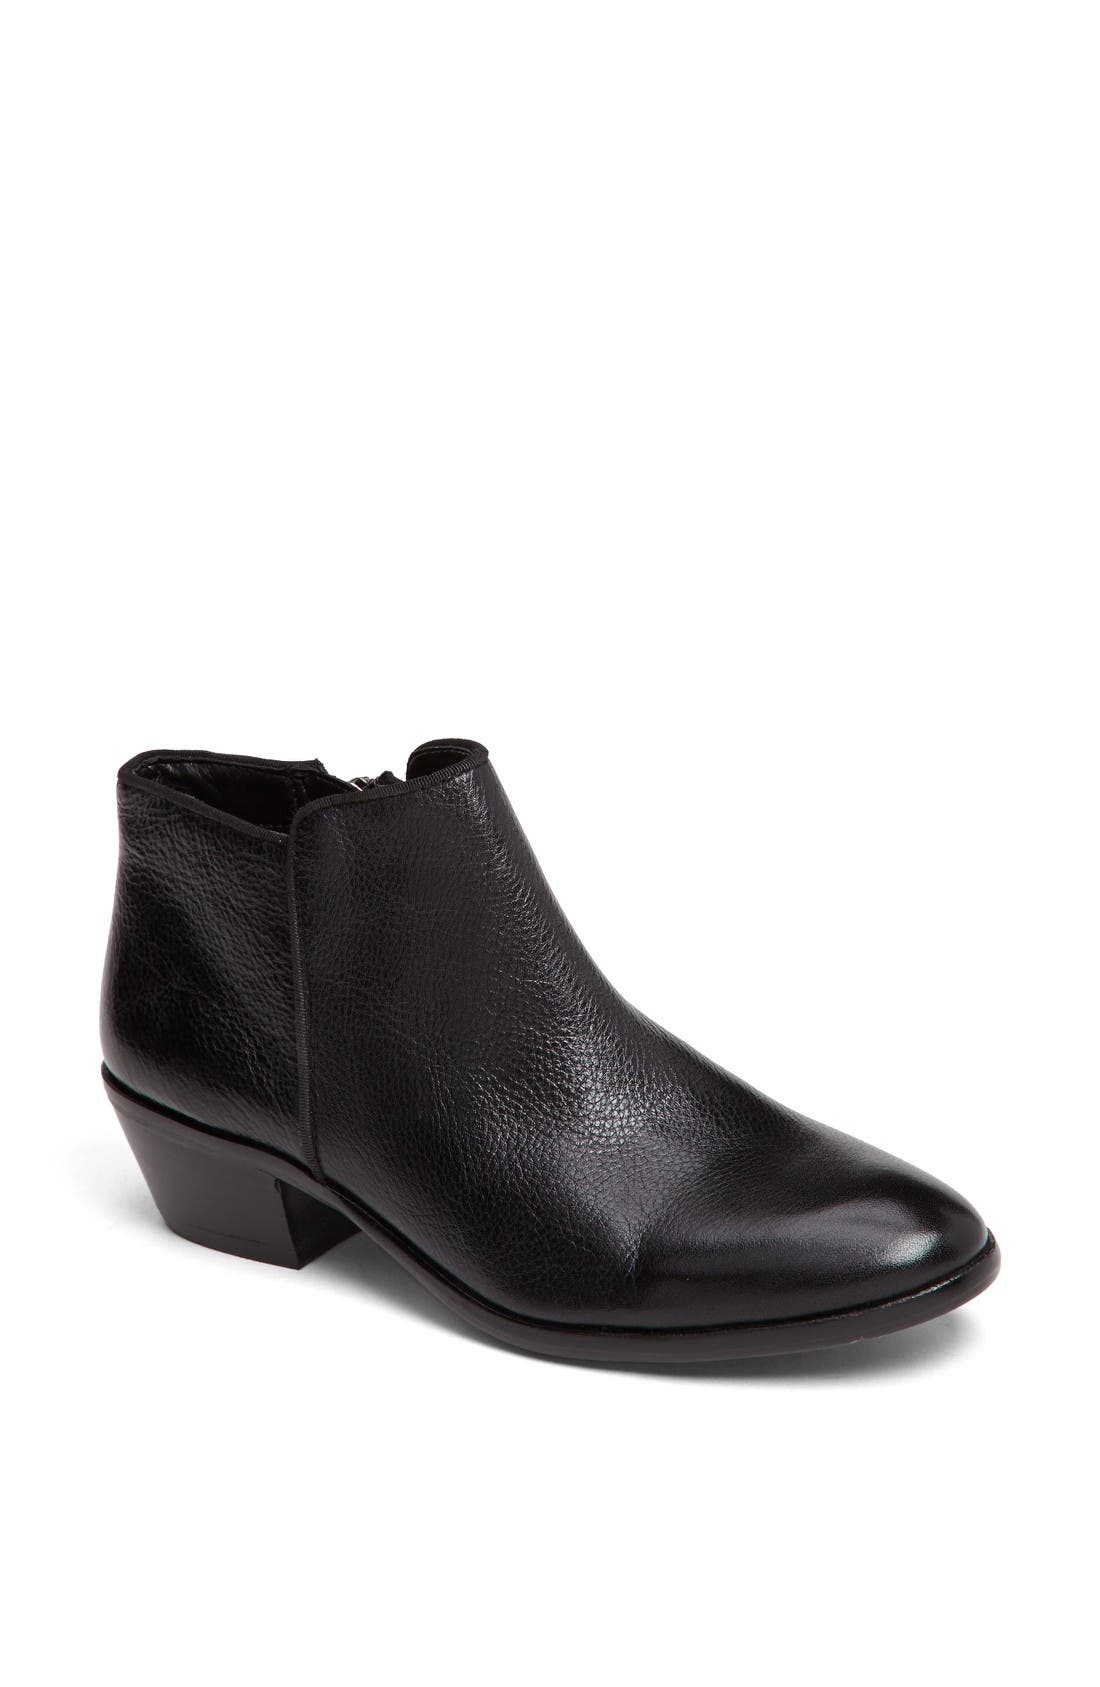 Main Image - Sam Edelman 'Petty' Chelsea Boot (Women)